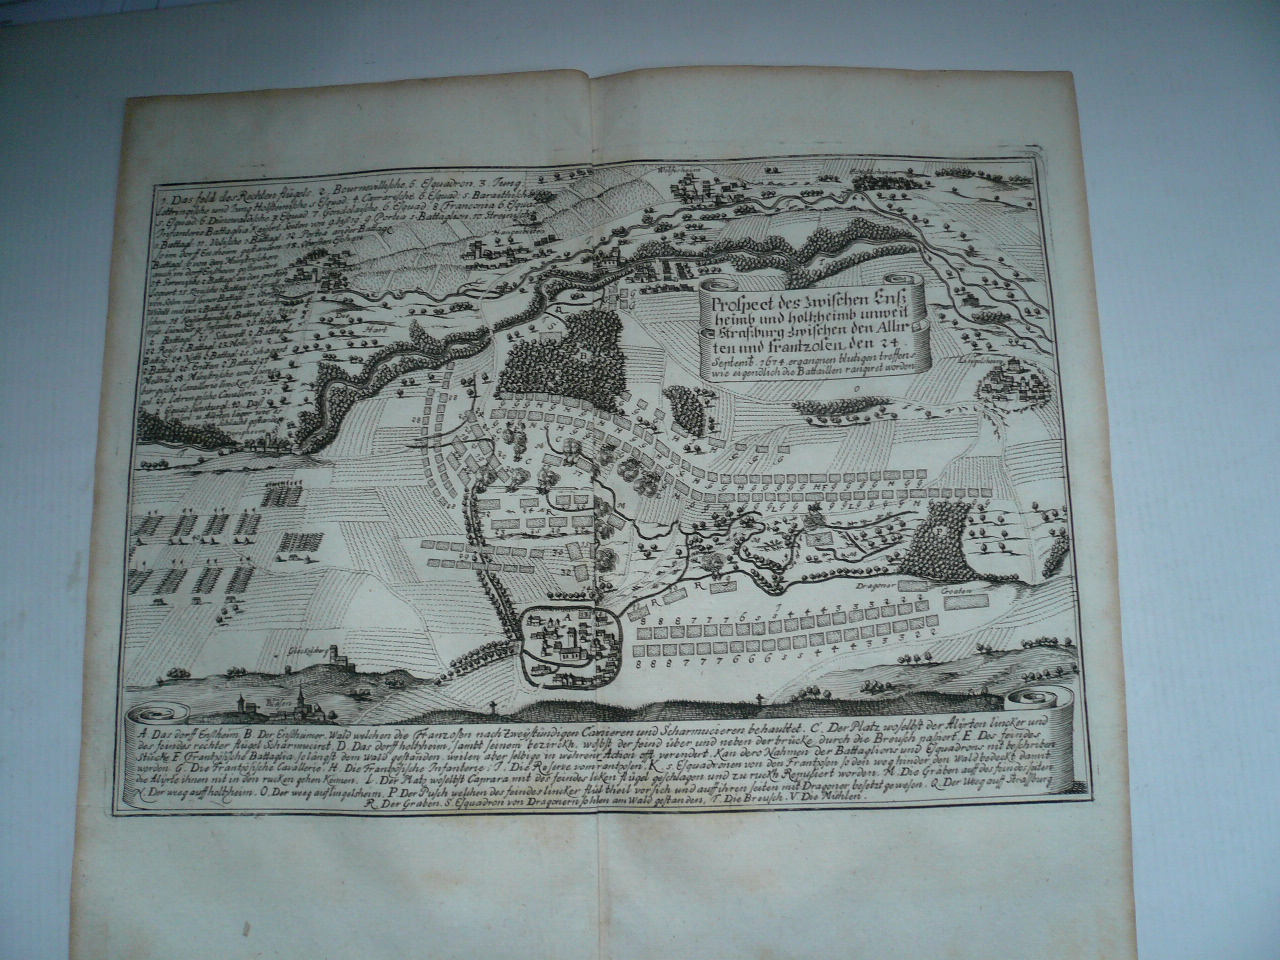 Battle of Ensheim, 24.09.1674, Merian, Theatrum Europaeum